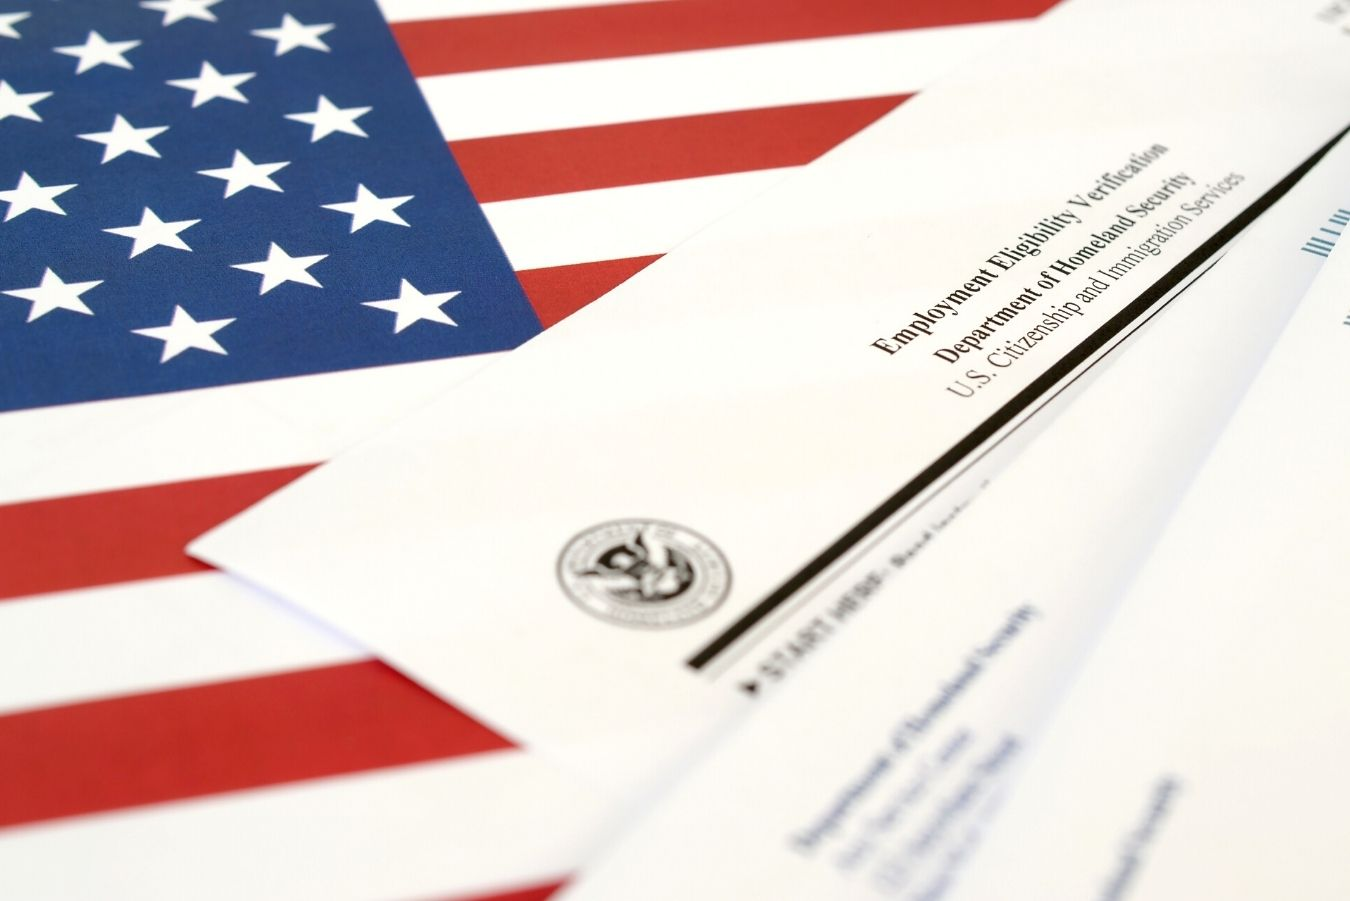 Several IRS forms w/ an American flag in the background